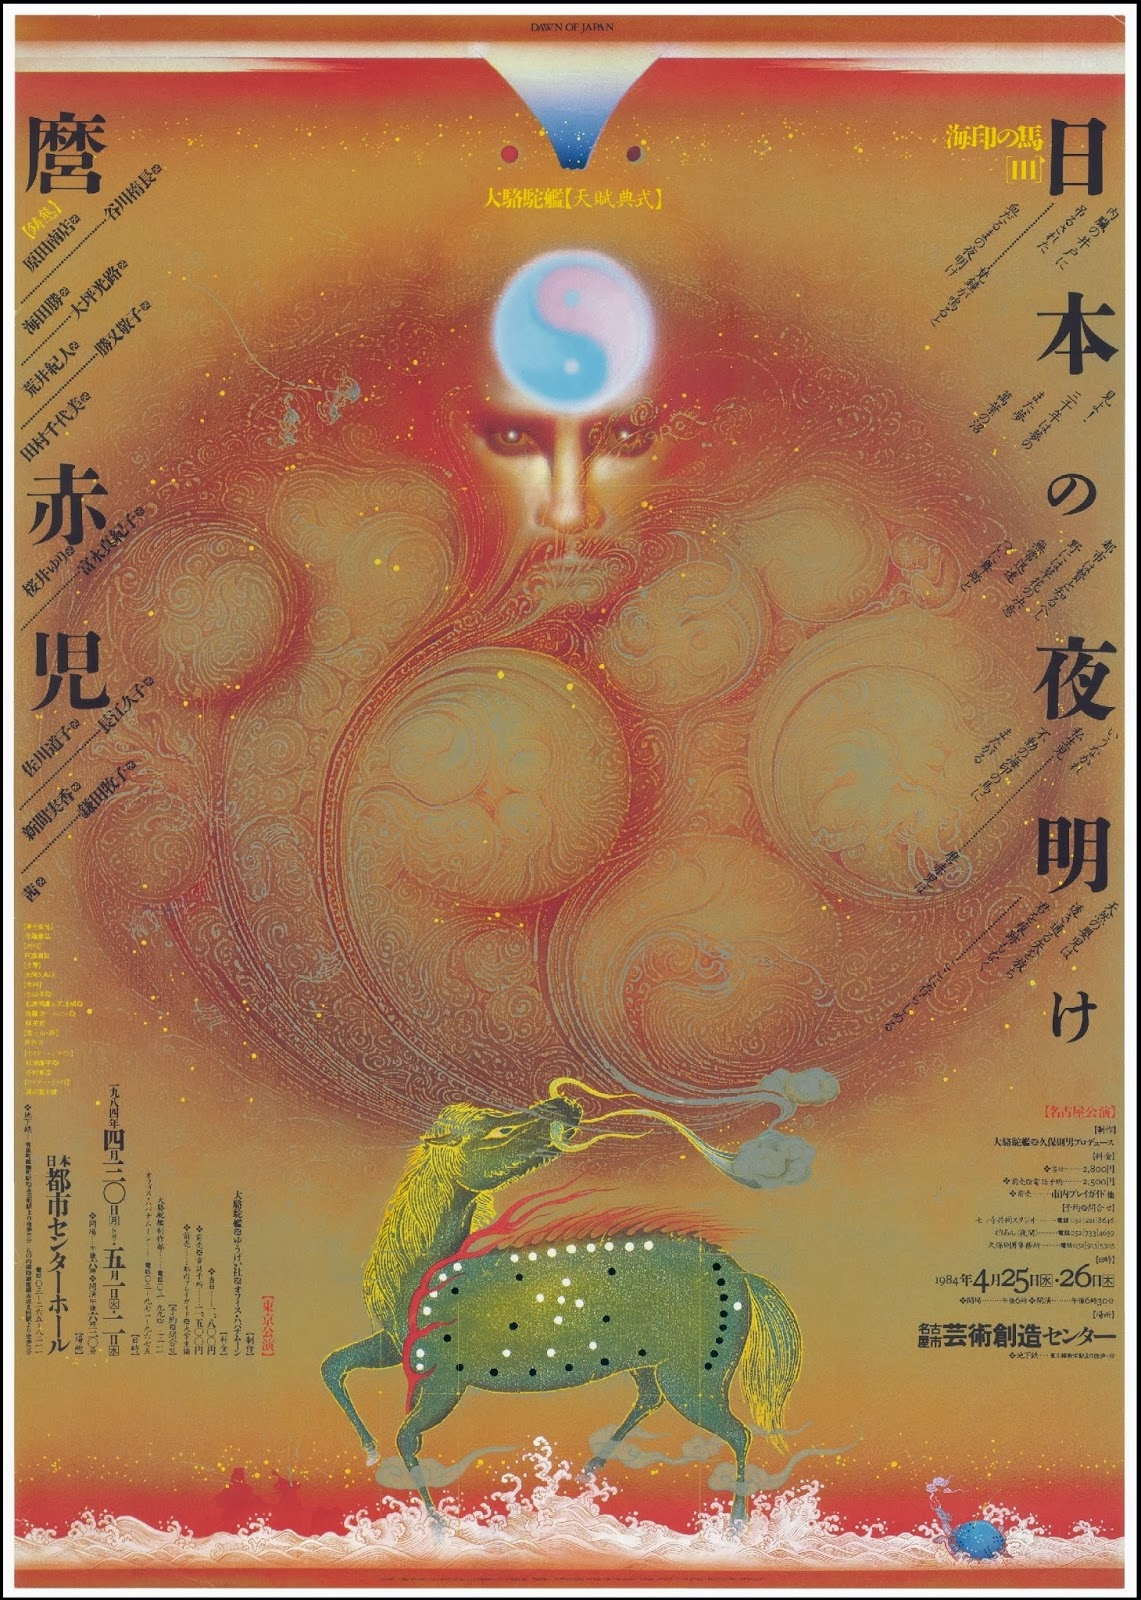 symbolic poster with face in cloud, embellished snorting horse + Japanese text